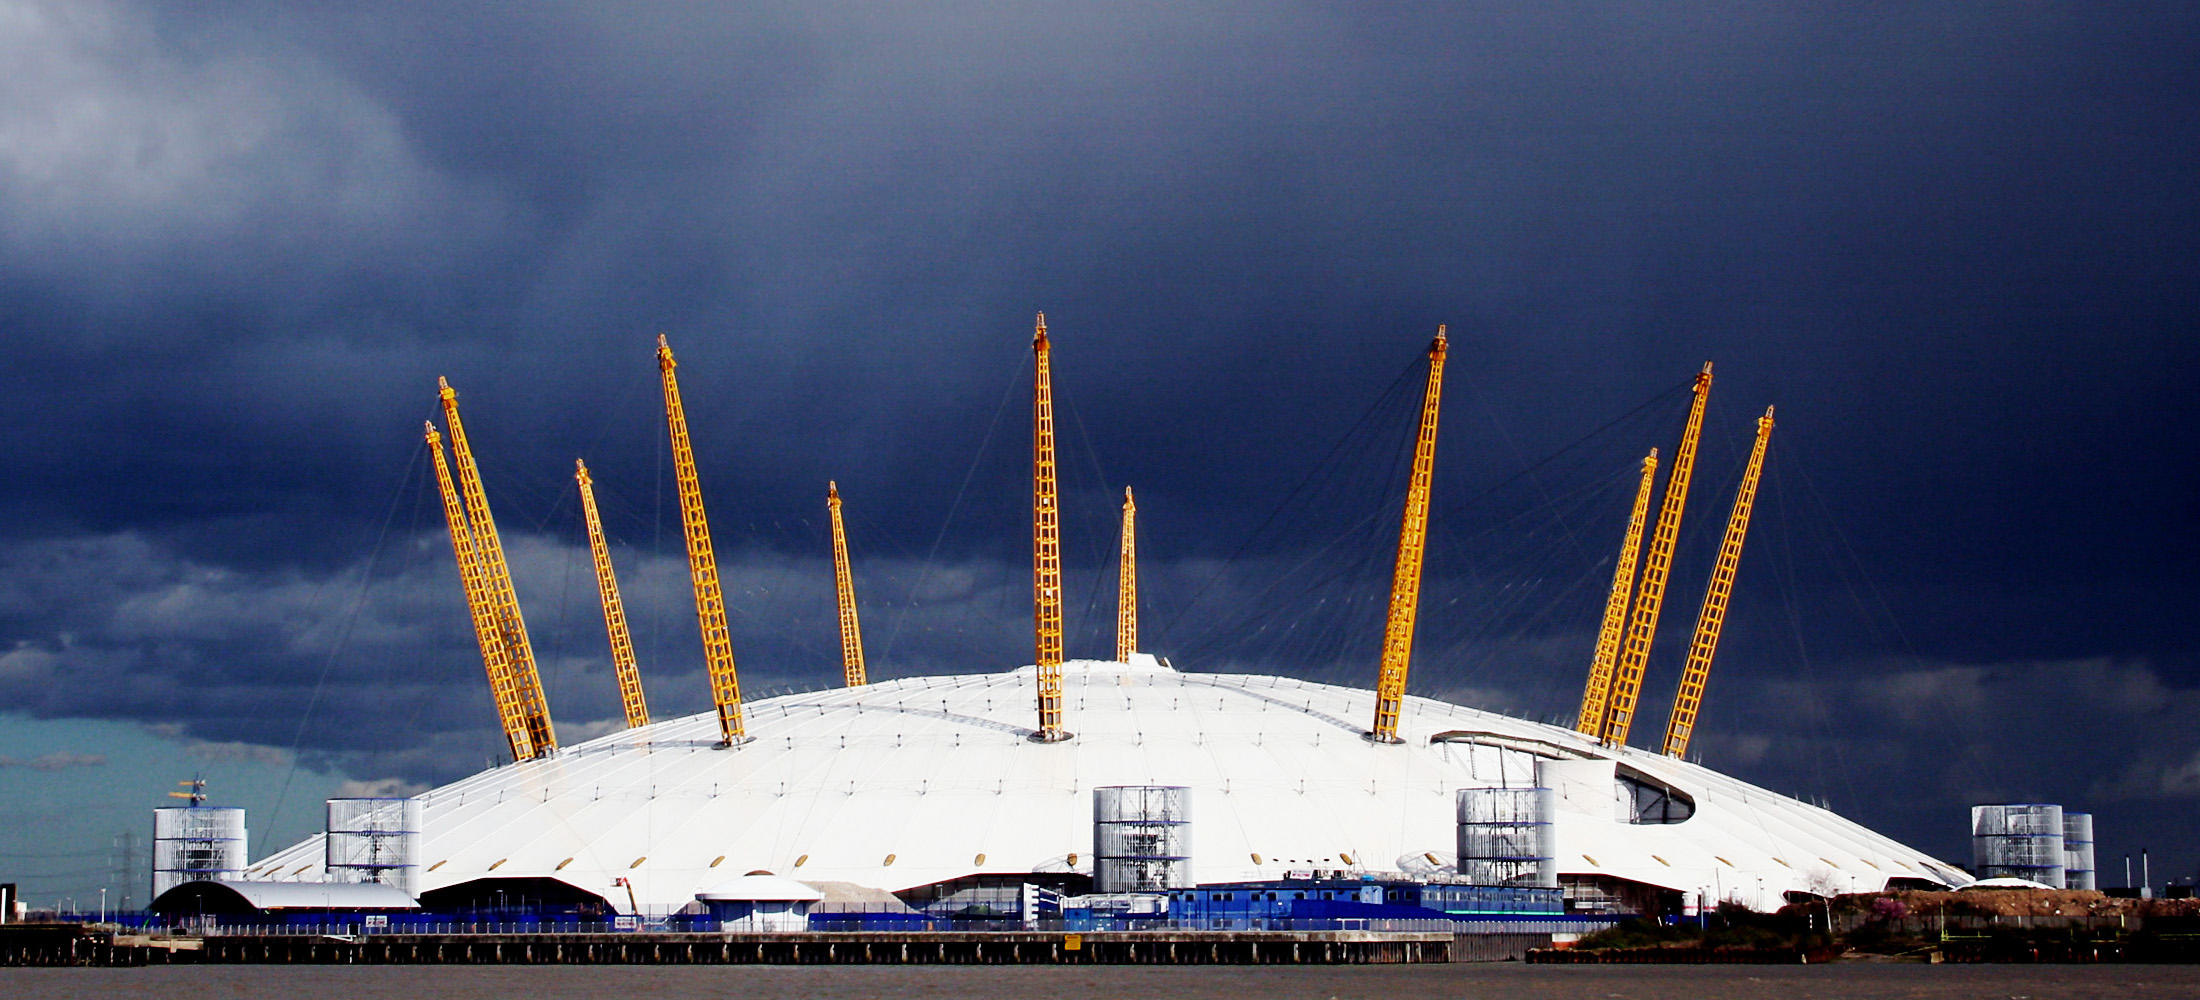 The-Millenium-Dome-London.jpg